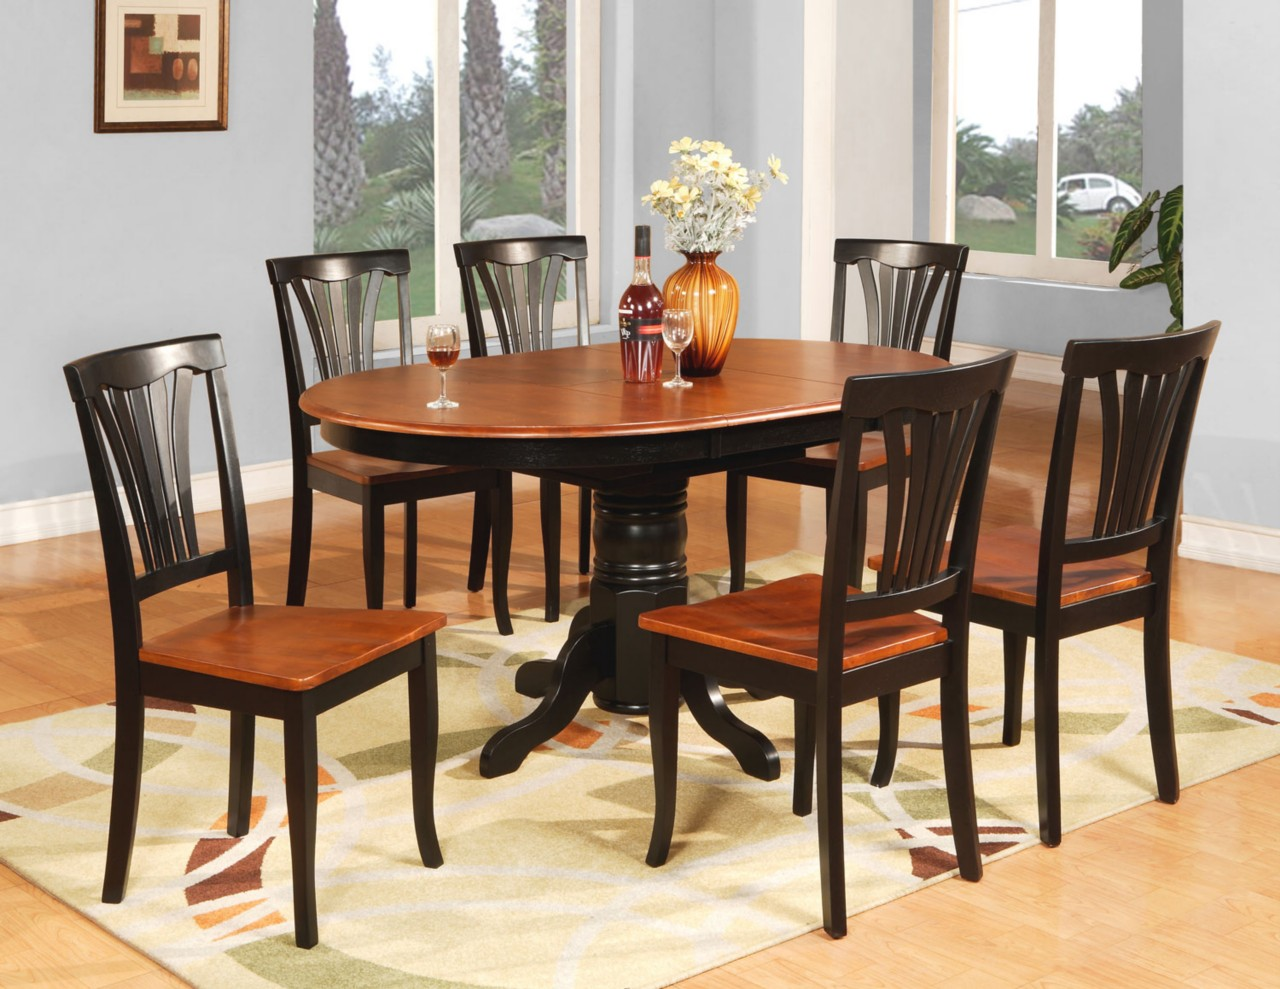 7 pc oval dinette kitchen dining room table 6 chairs ebay for Kitchen table and chairs